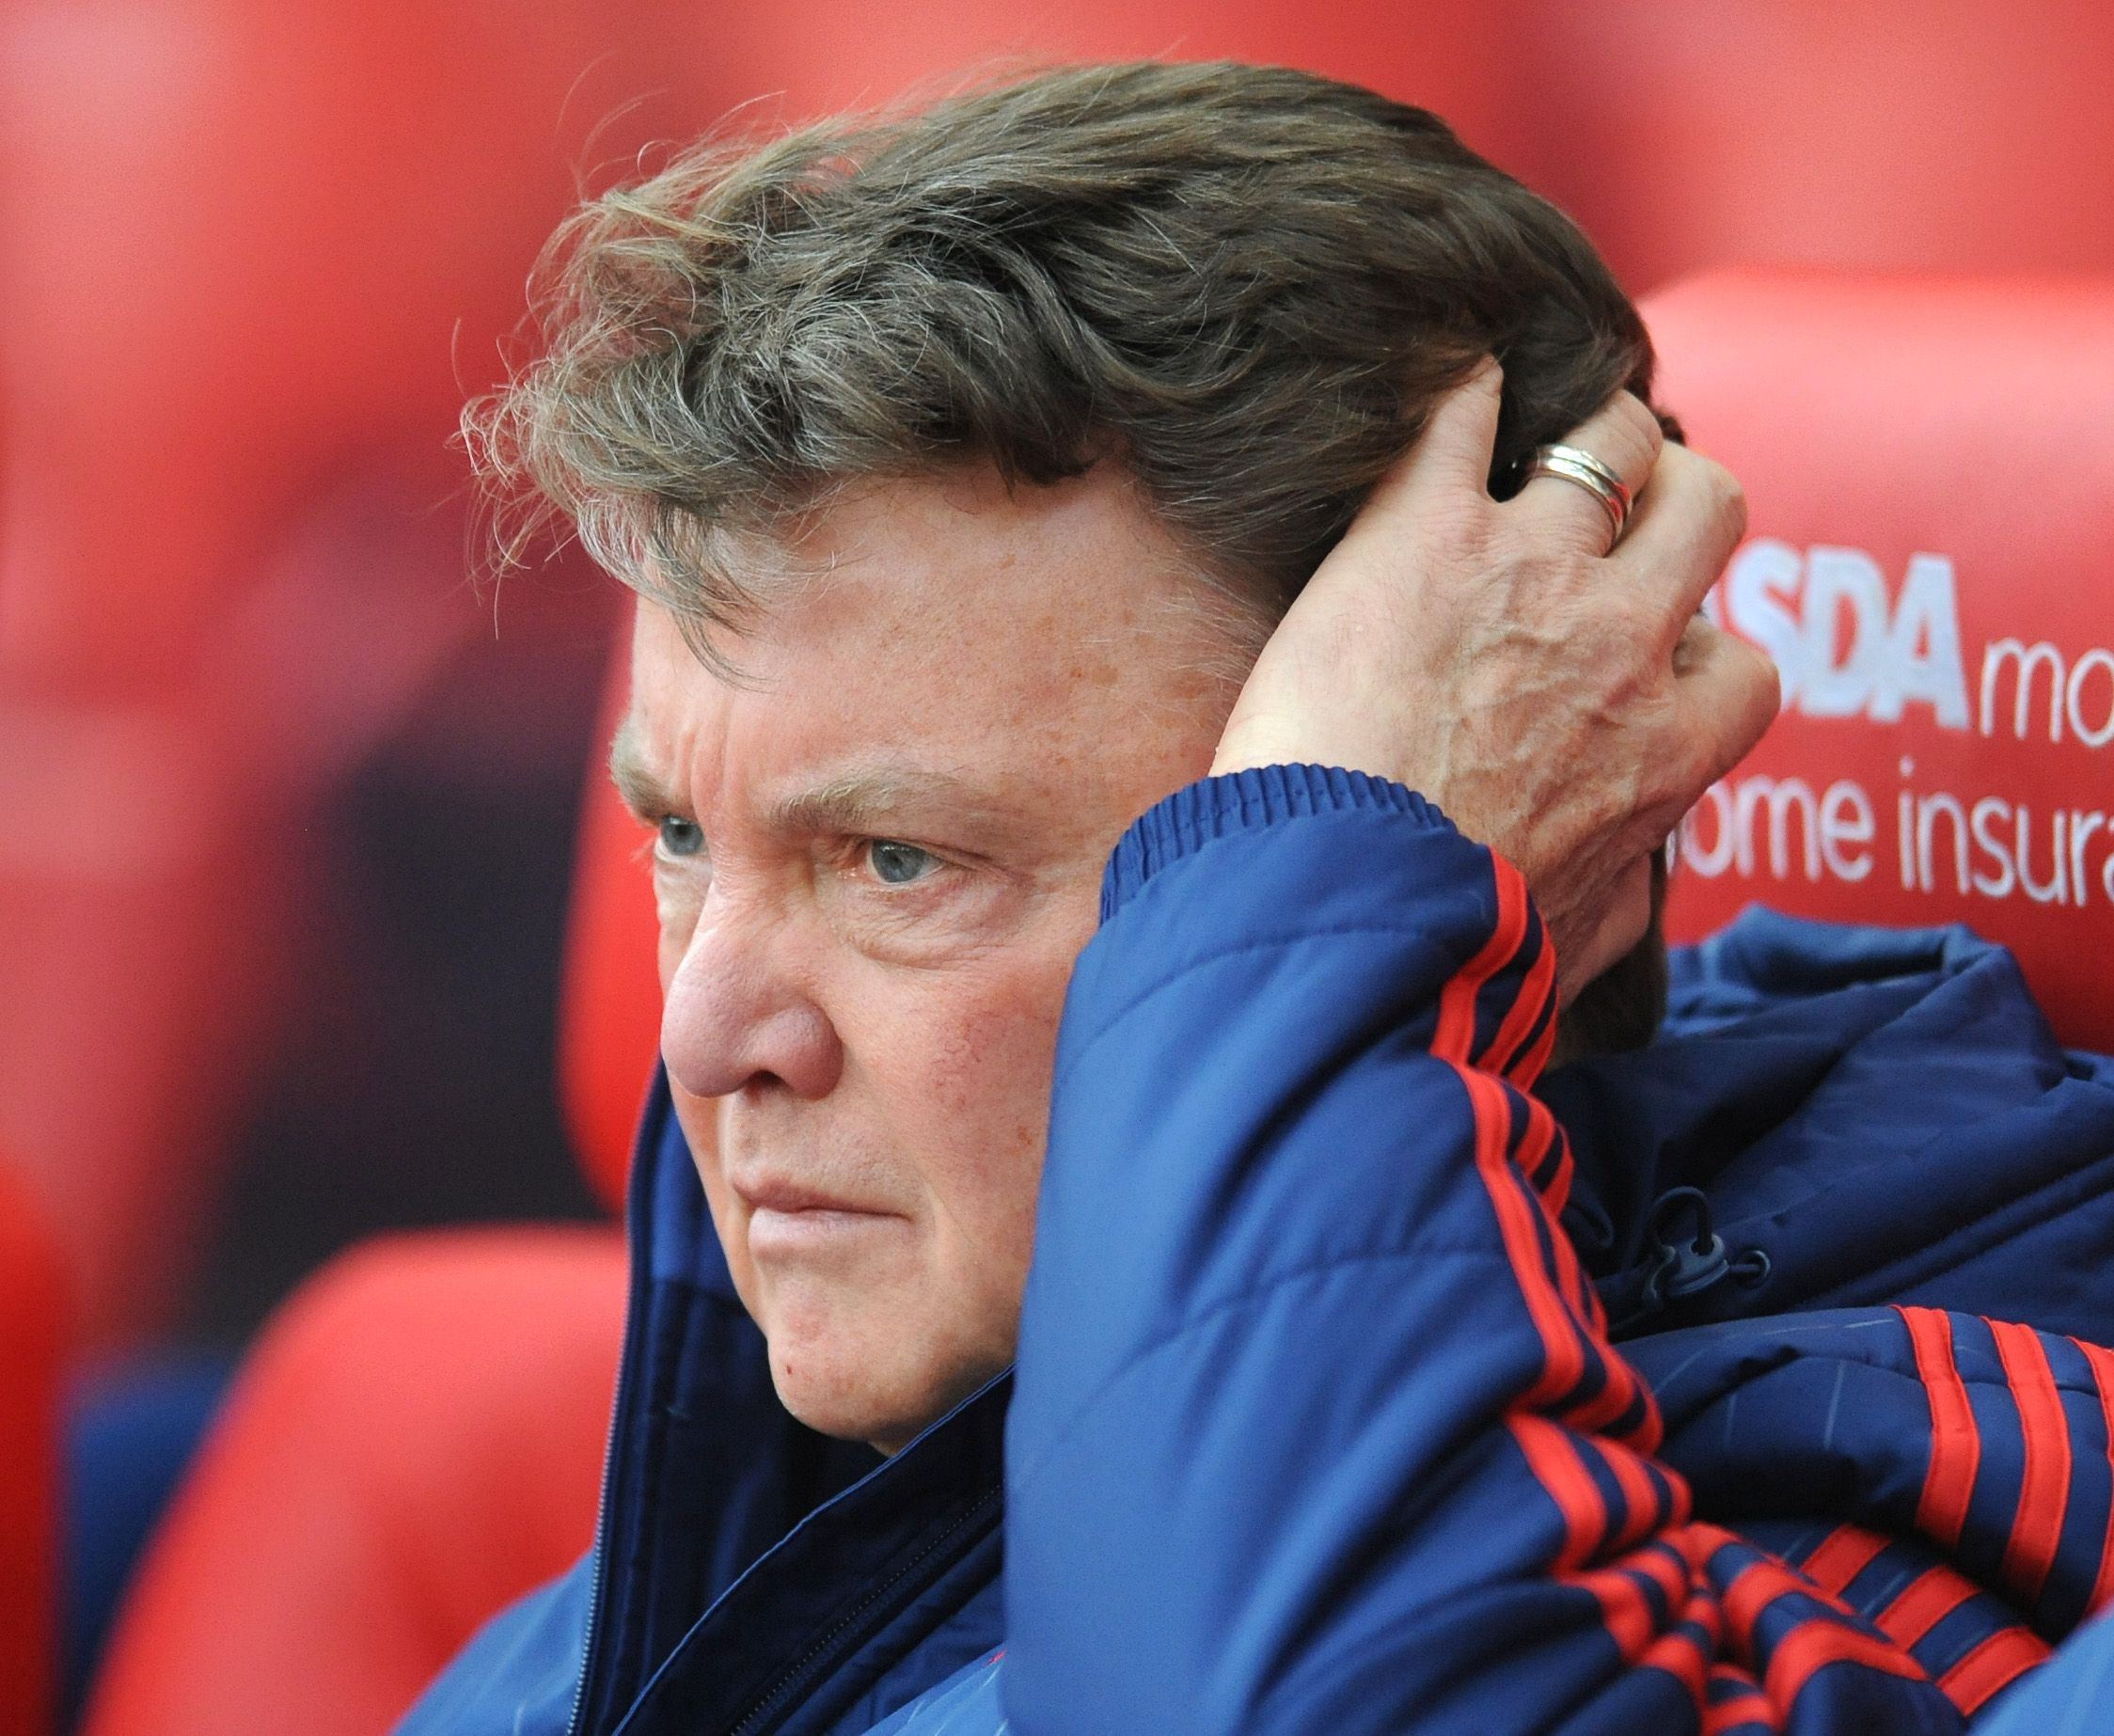 Manchester United manager Louis van Gaal watches from the bench during the English Premier League soccer match between Stoke City and Manchester United at the Britannia Stadium, Stoke on Trent, England, Saturday, December 26, 2015. Photo: AP